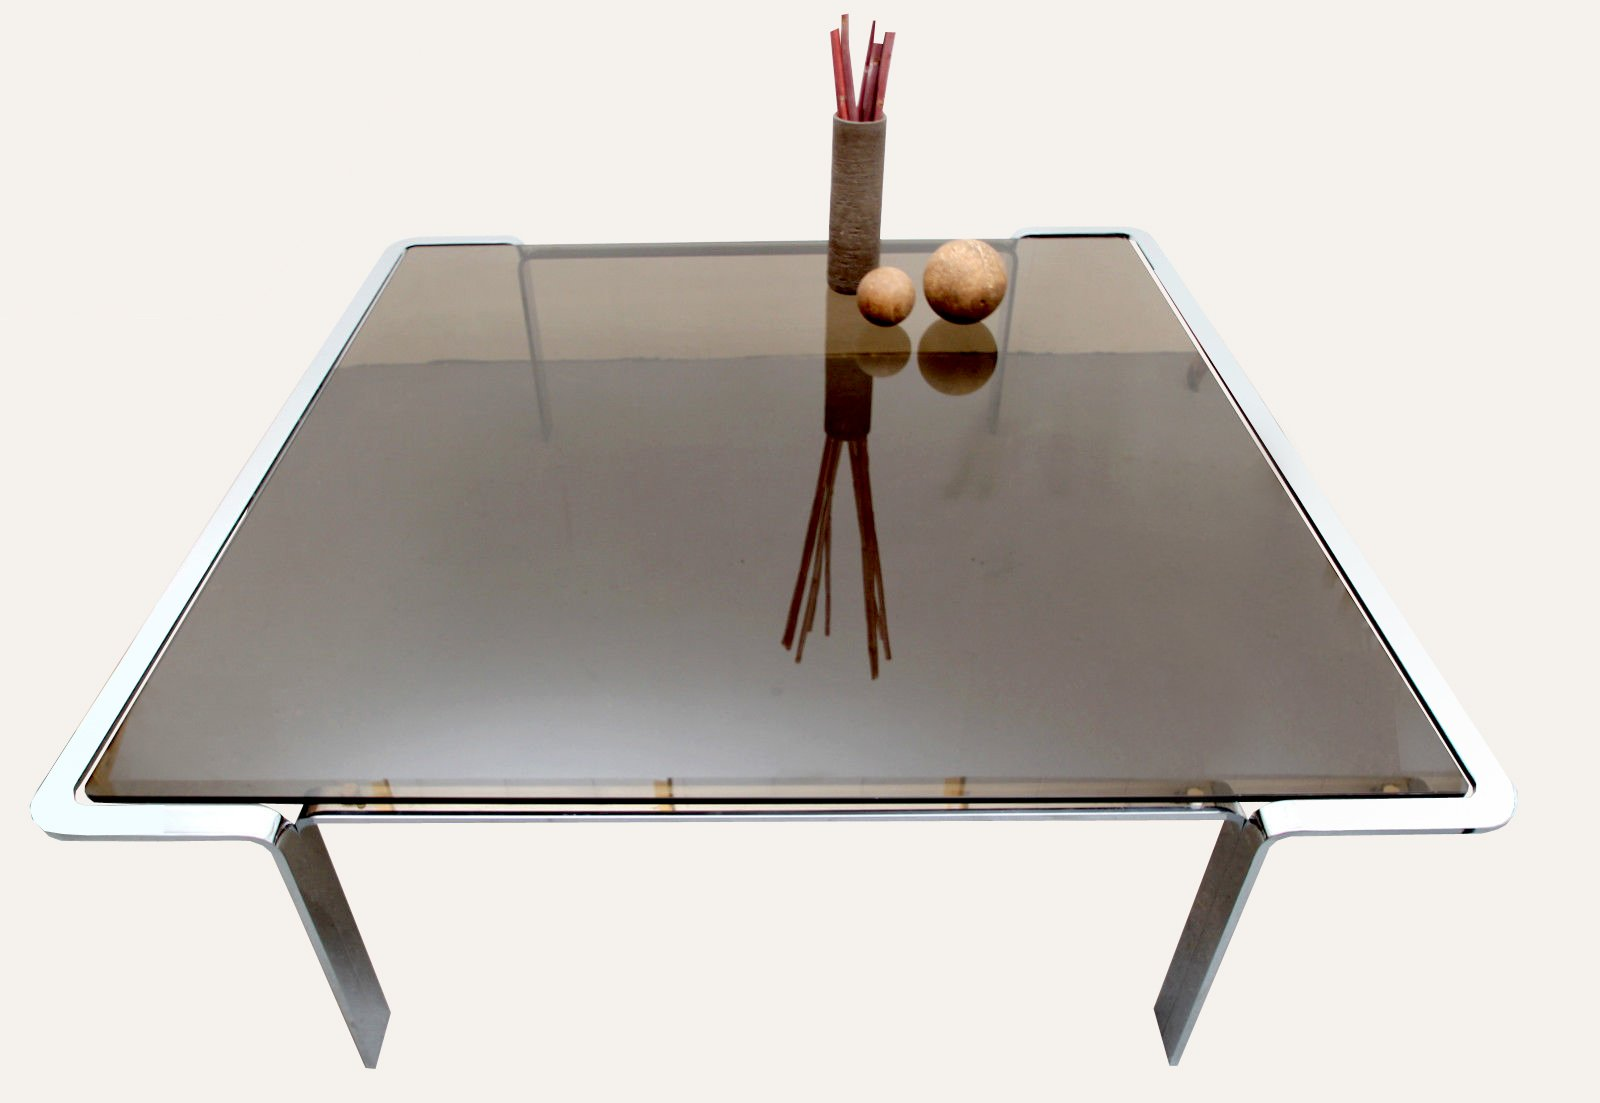 grande table basse en verre fum 1970s en vente sur pamono. Black Bedroom Furniture Sets. Home Design Ideas